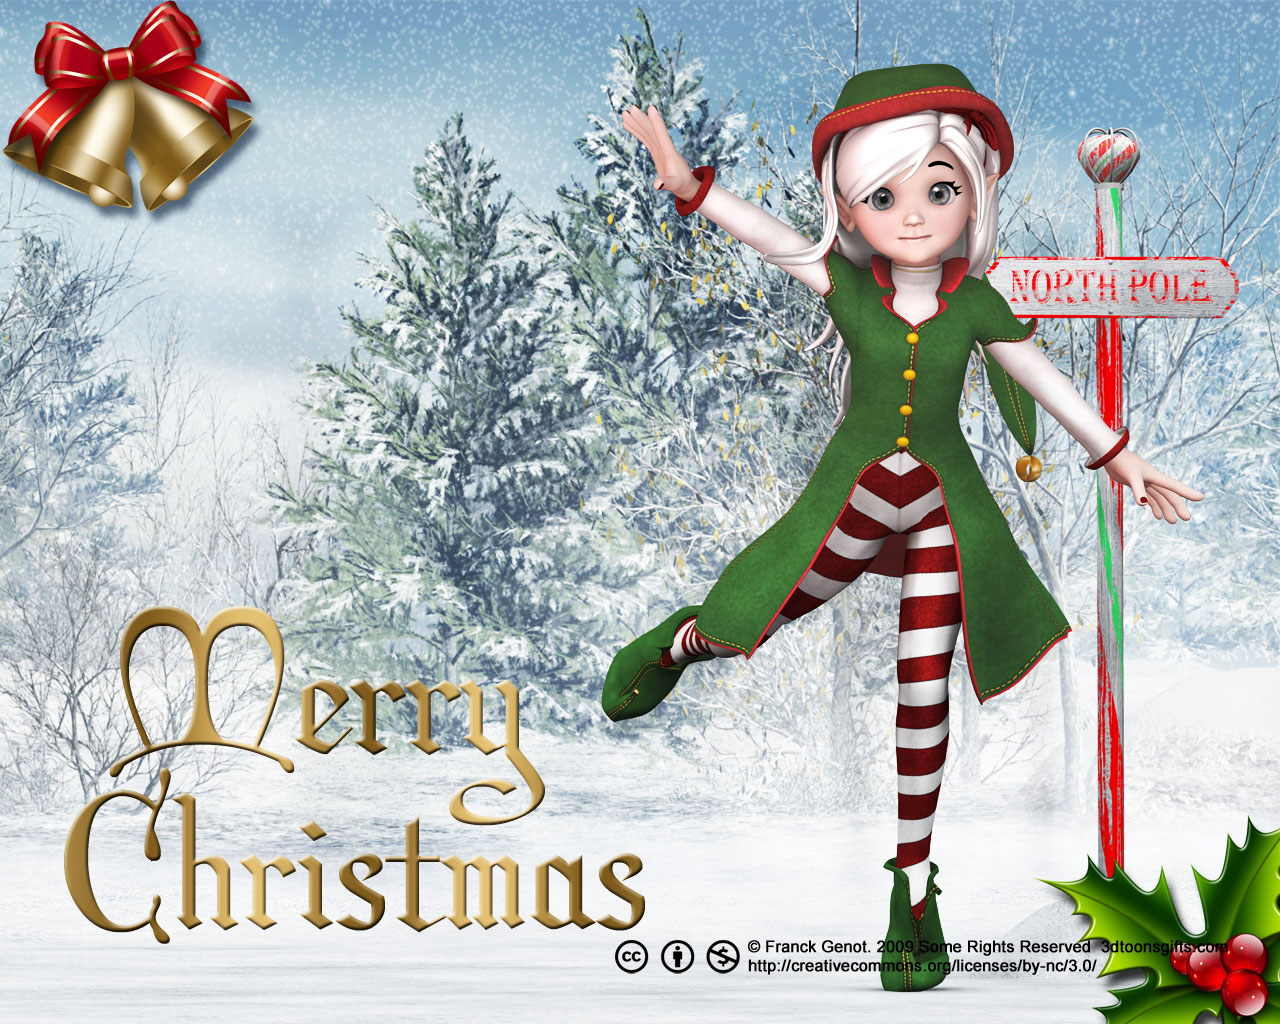 Ultimate free desktop wallpaper gallery utimate desktop - Christmas elf on the shelf wallpaper ...